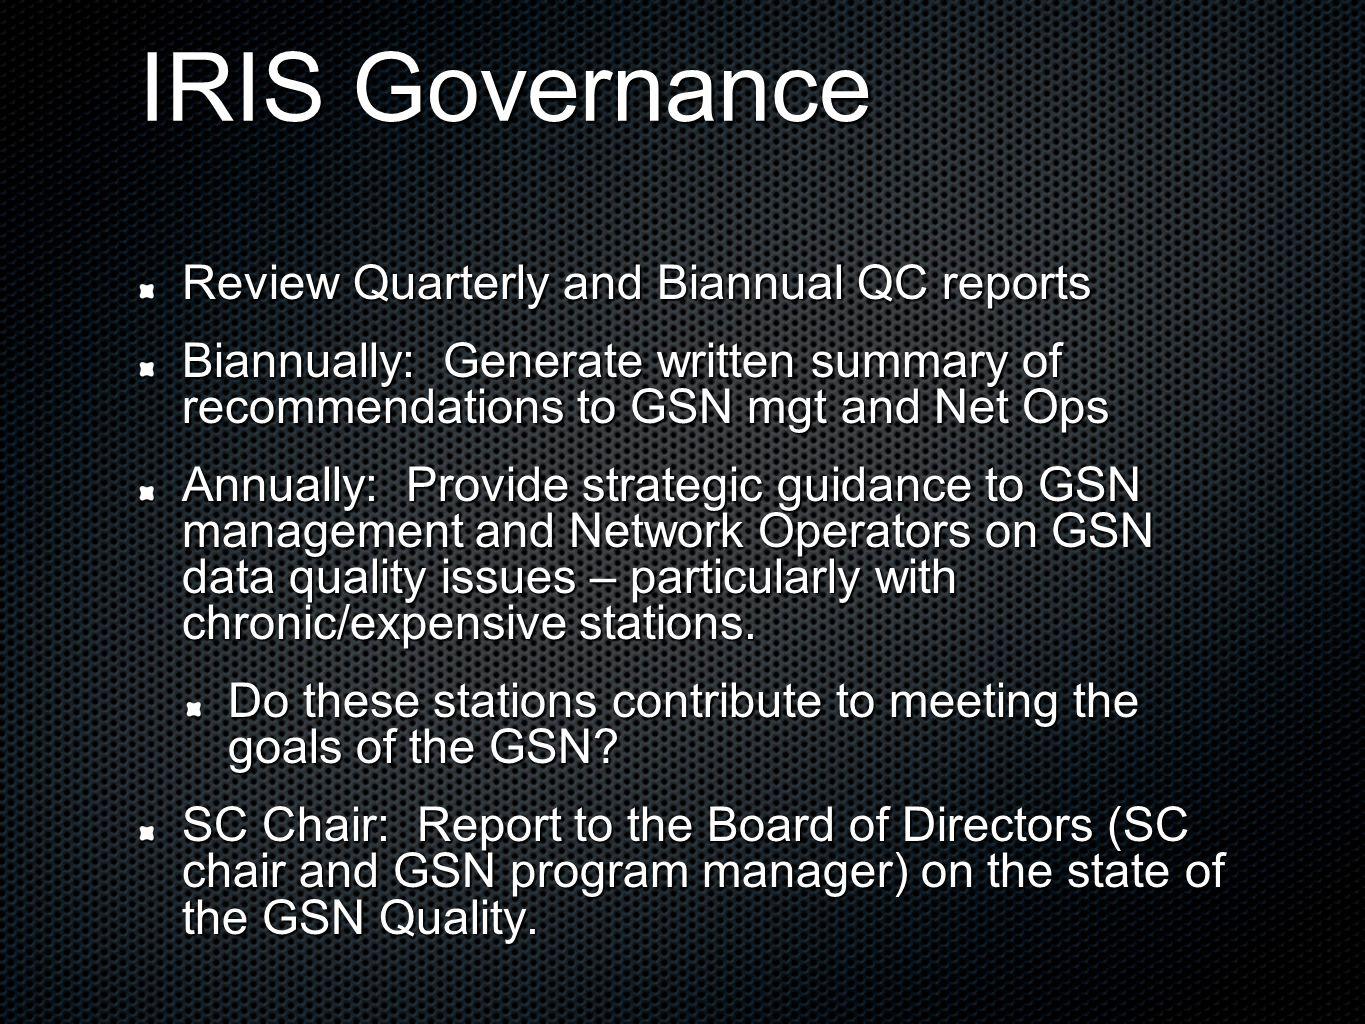 IRIS Governance Review Quarterly and Biannual QC reports Biannually: Generate written summary of recommendations to GSN mgt and Net Ops Annually: Provide strategic guidance to GSN management and Network Operators on GSN data quality issues – particularly with chronic/expensive stations.